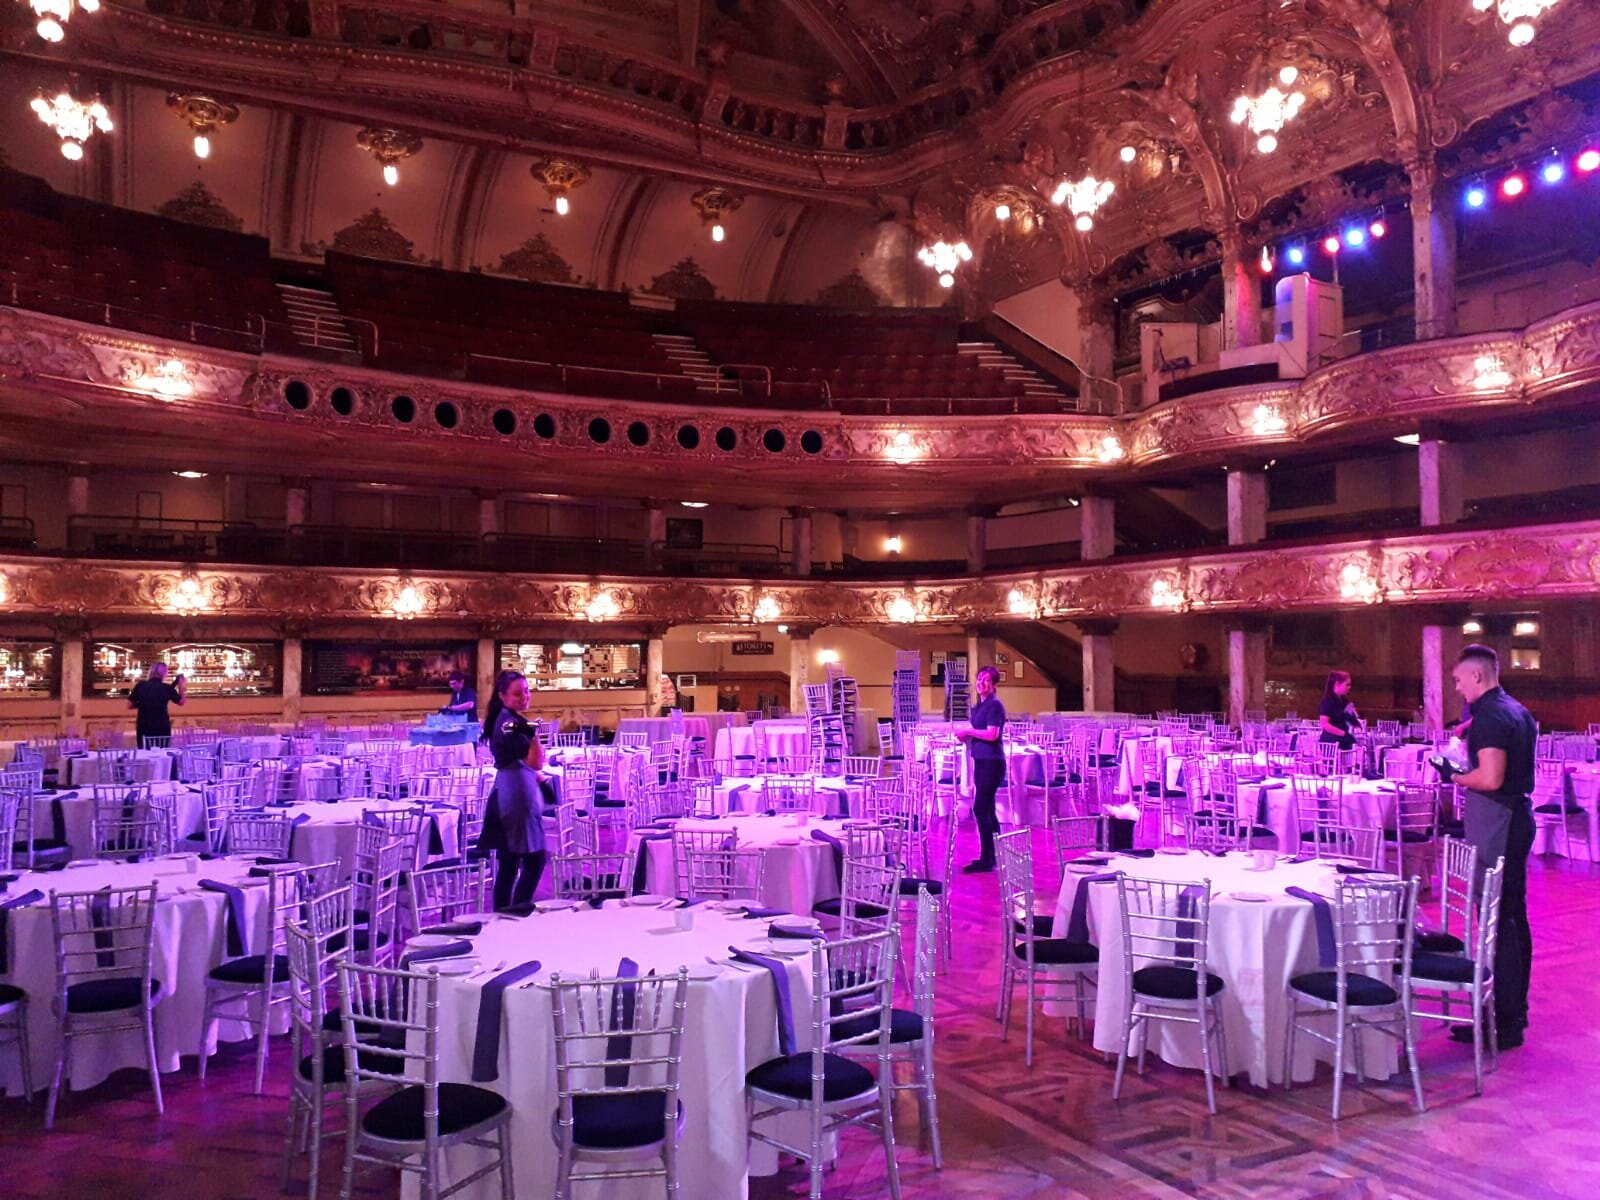 1 event at the Blackpool Tower down and now the Trinity Hospice Ball to reset for the following day…TEAMWORK MAKES THE DREAM WORK!